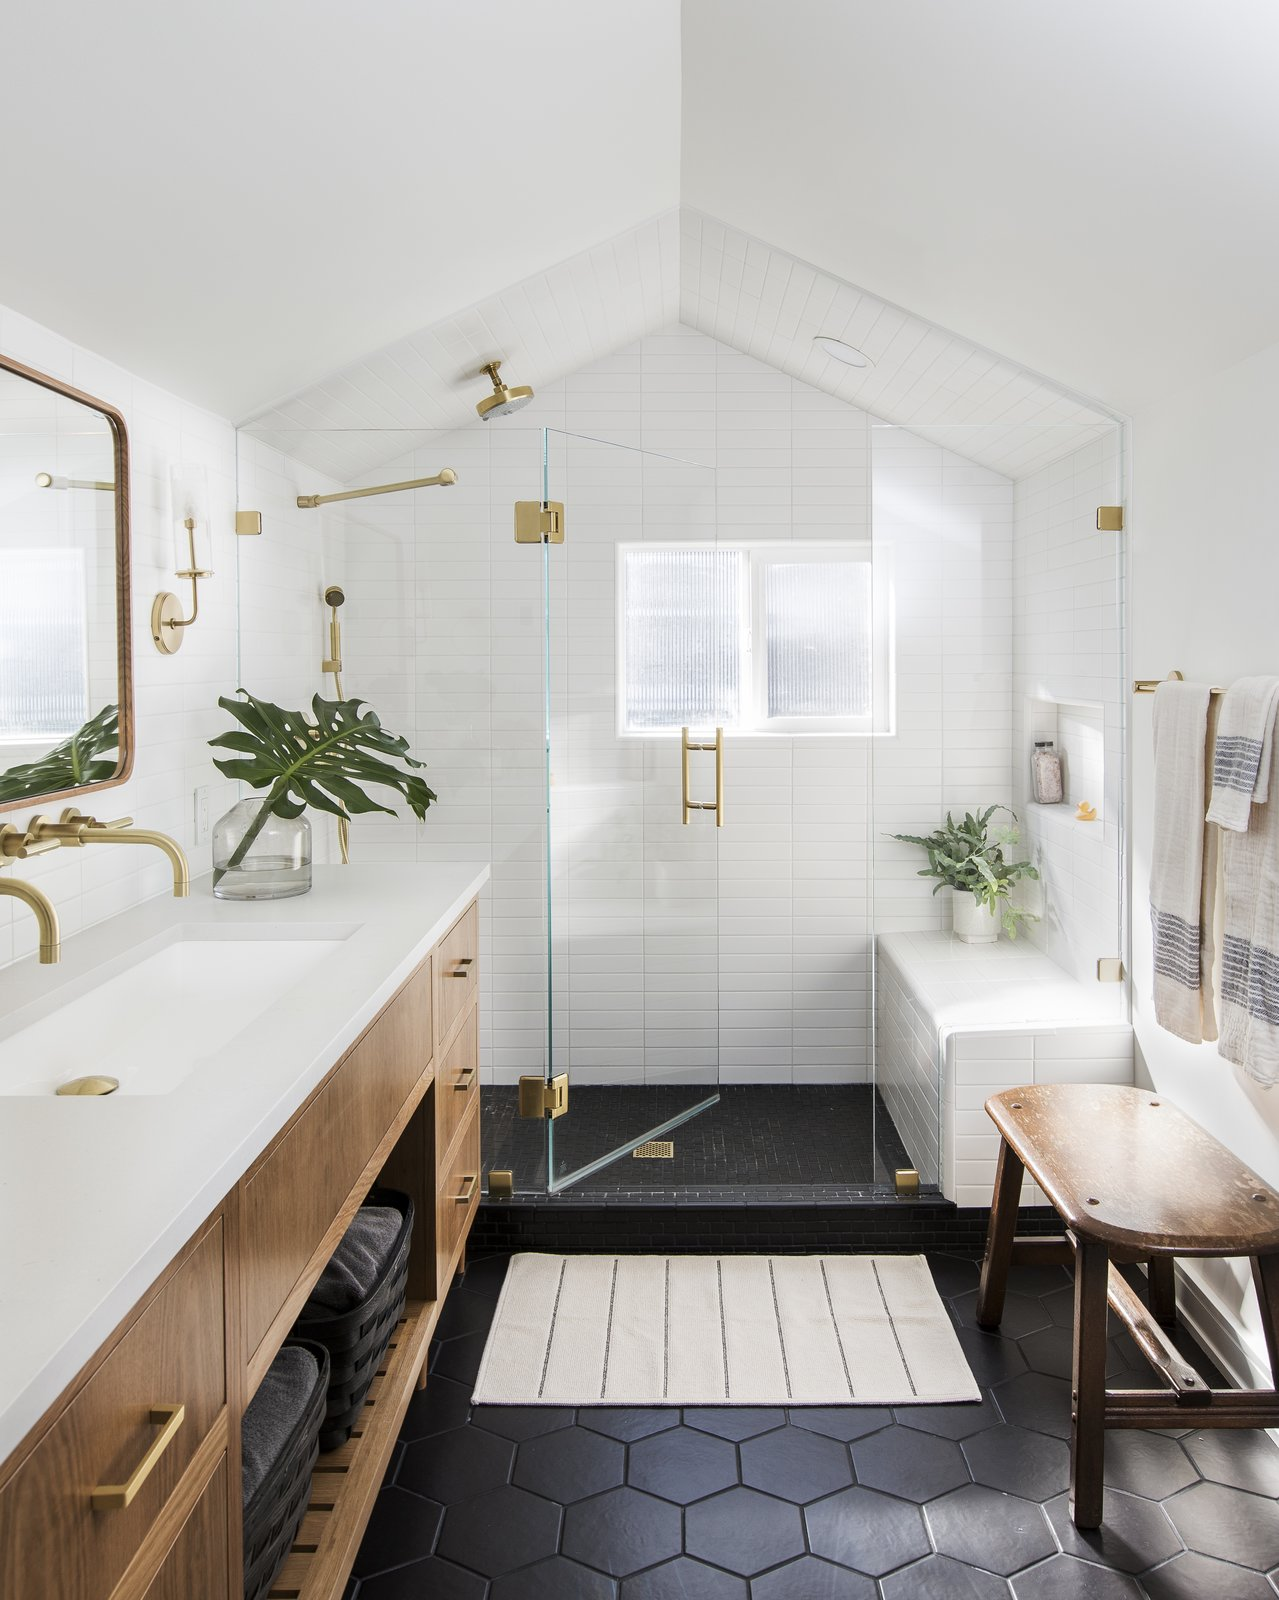 modern bathroom with pitched white ceiling, matte black hexagonal floor tiles, wooden vanity with white ceramic countertop